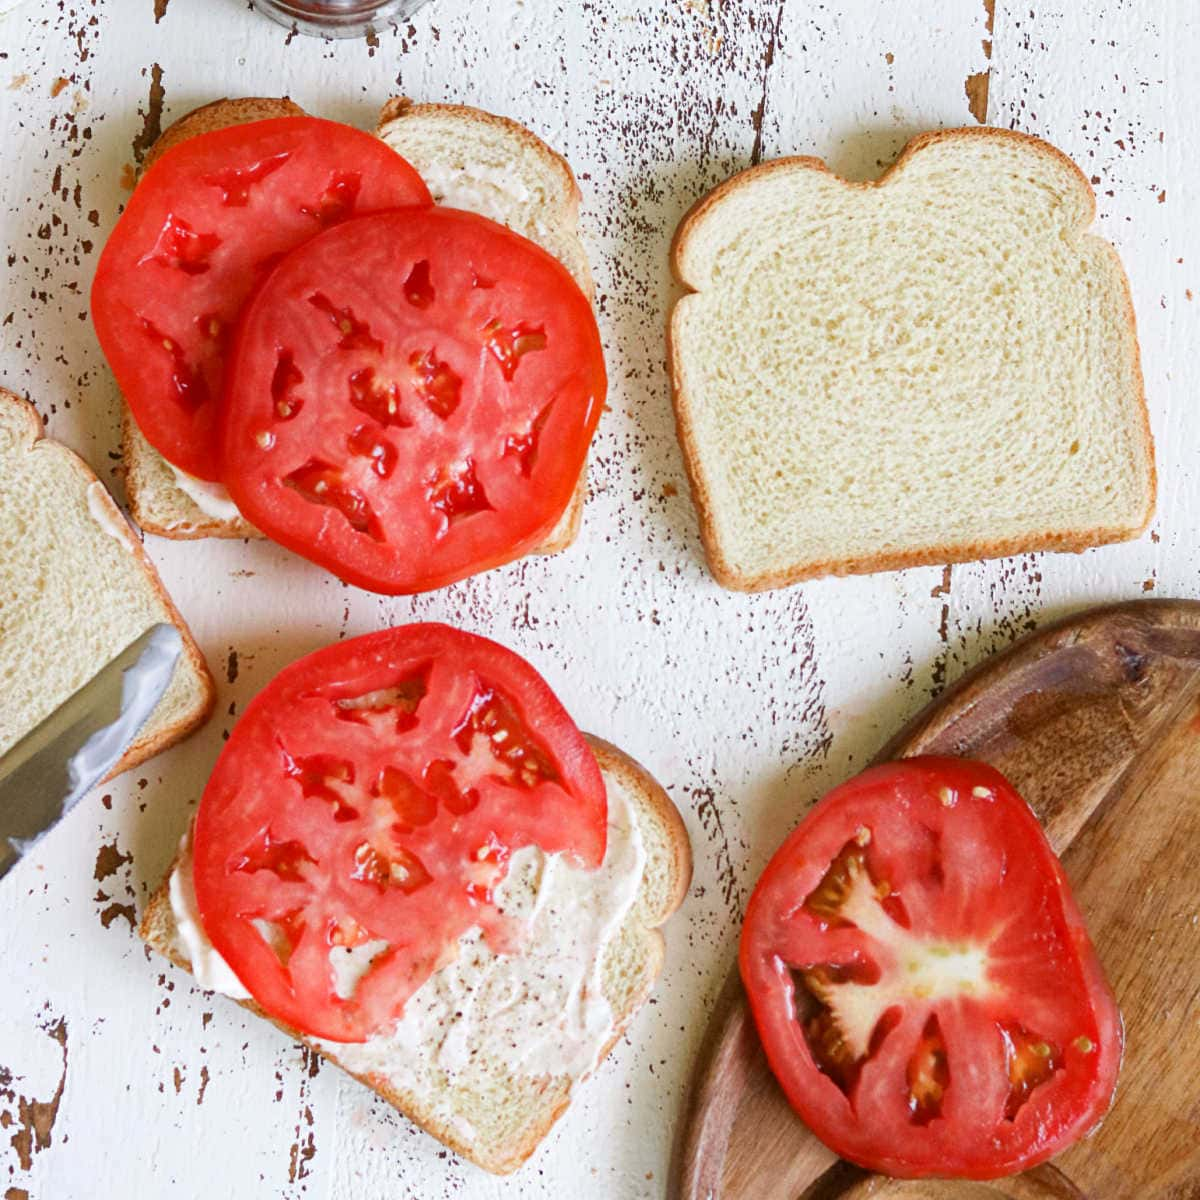 Sliced ripe tomatoes on white bread.